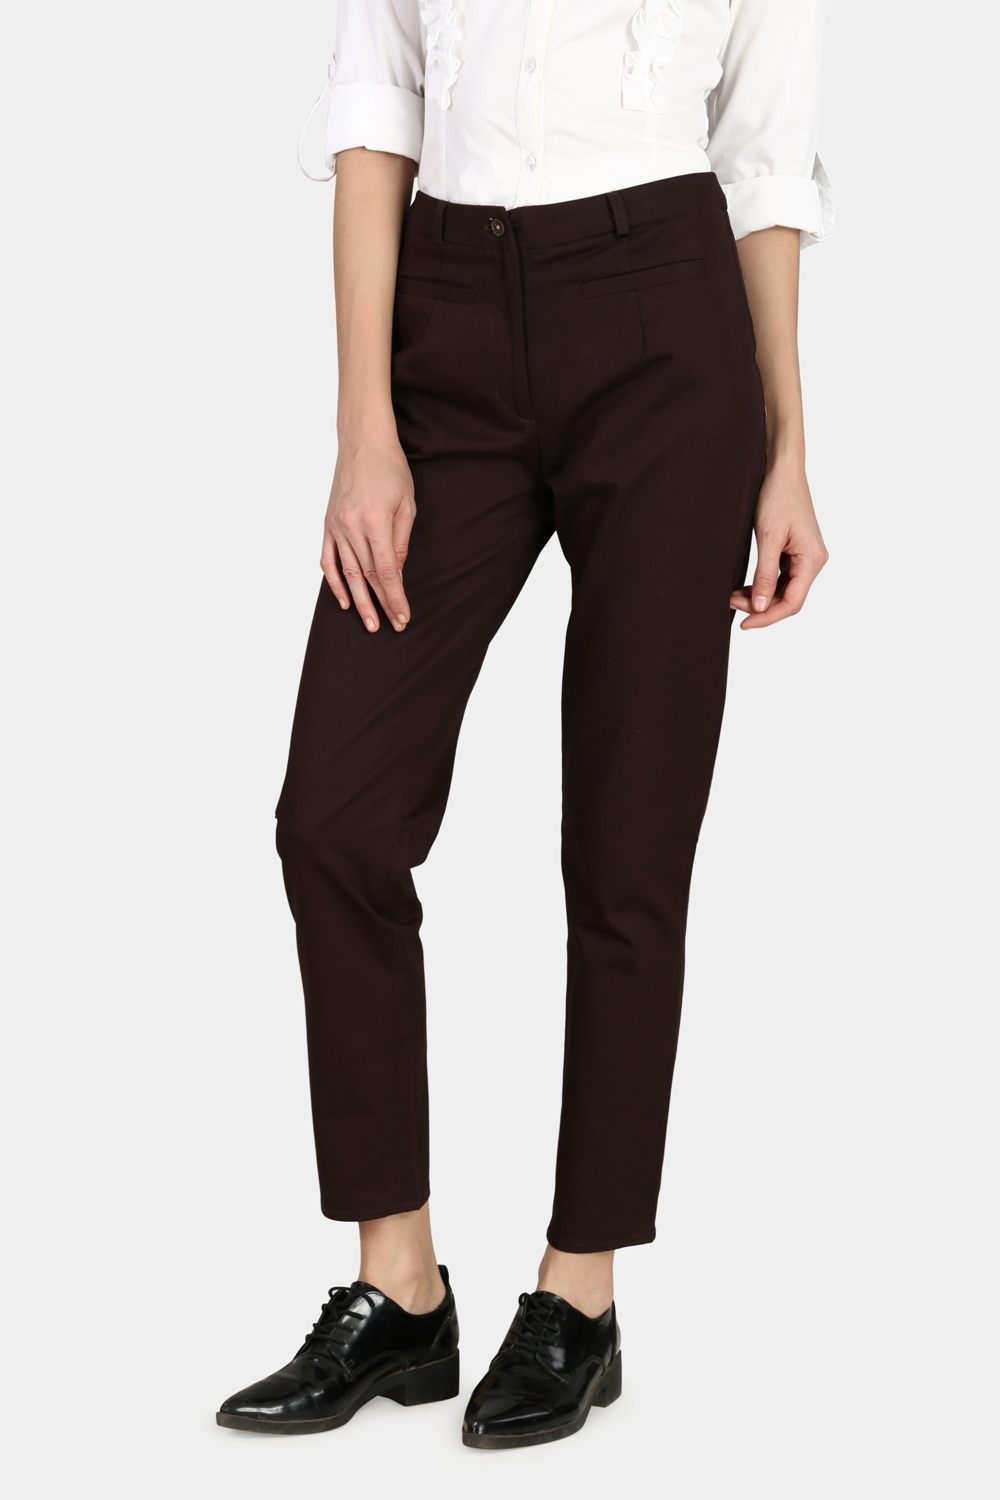 Pipe Pocket Trouser -1